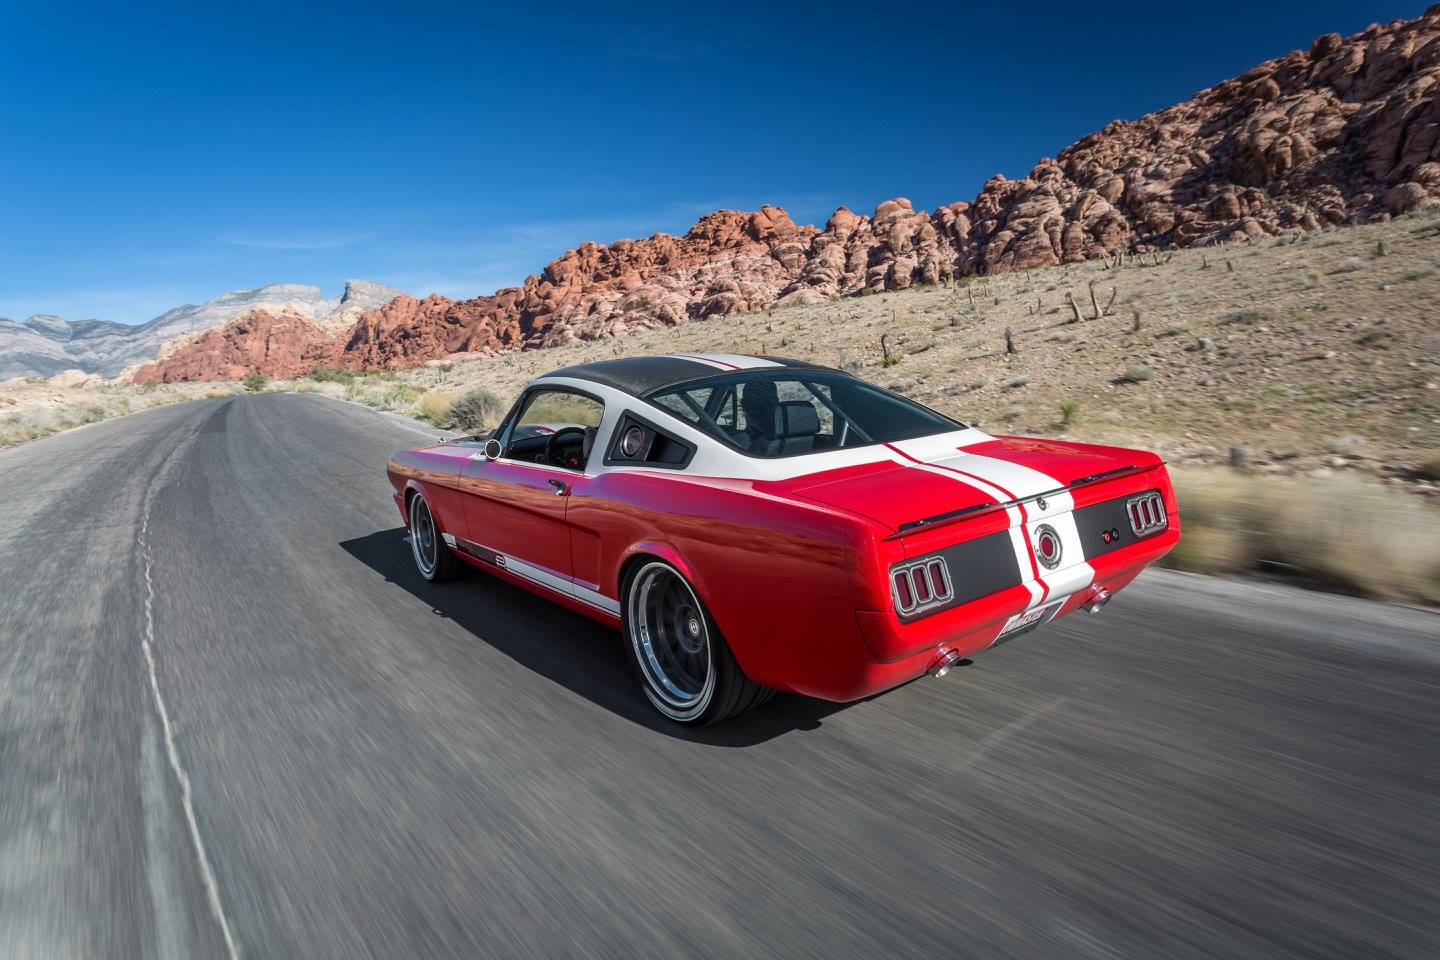 Ringbrothers 1965 Splitr Mustang At The Red Rock Canyon